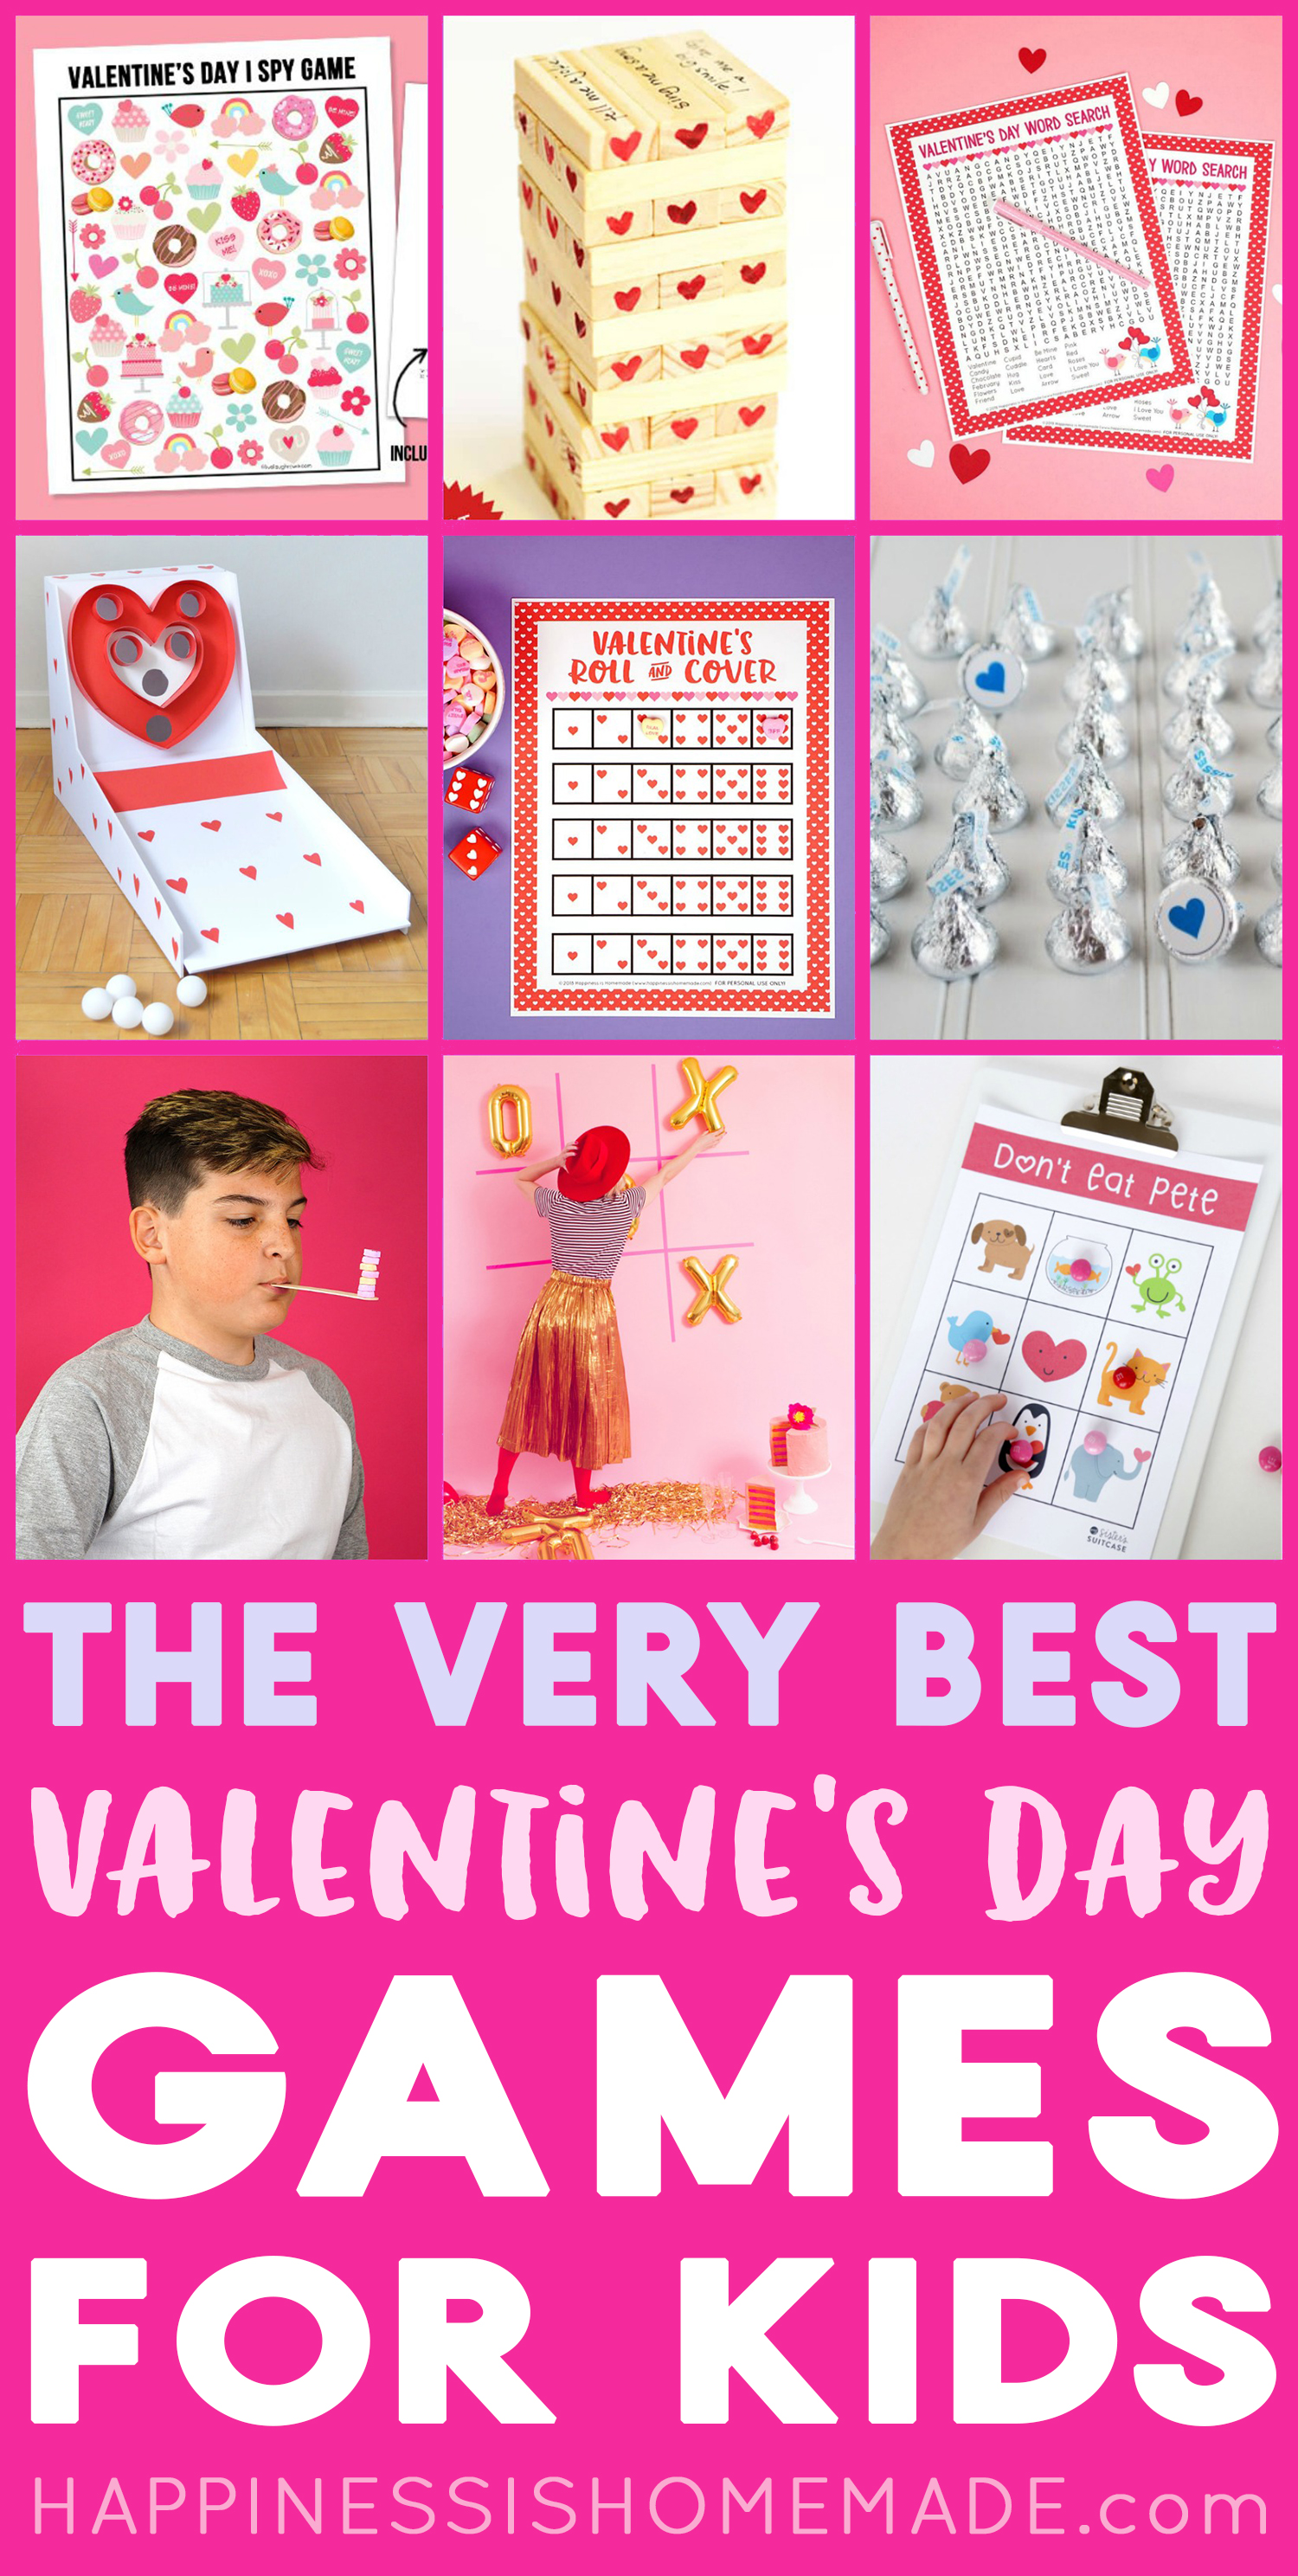 30 Fun Valentine Games For Kids Of All Ages Happiness Is Homemade